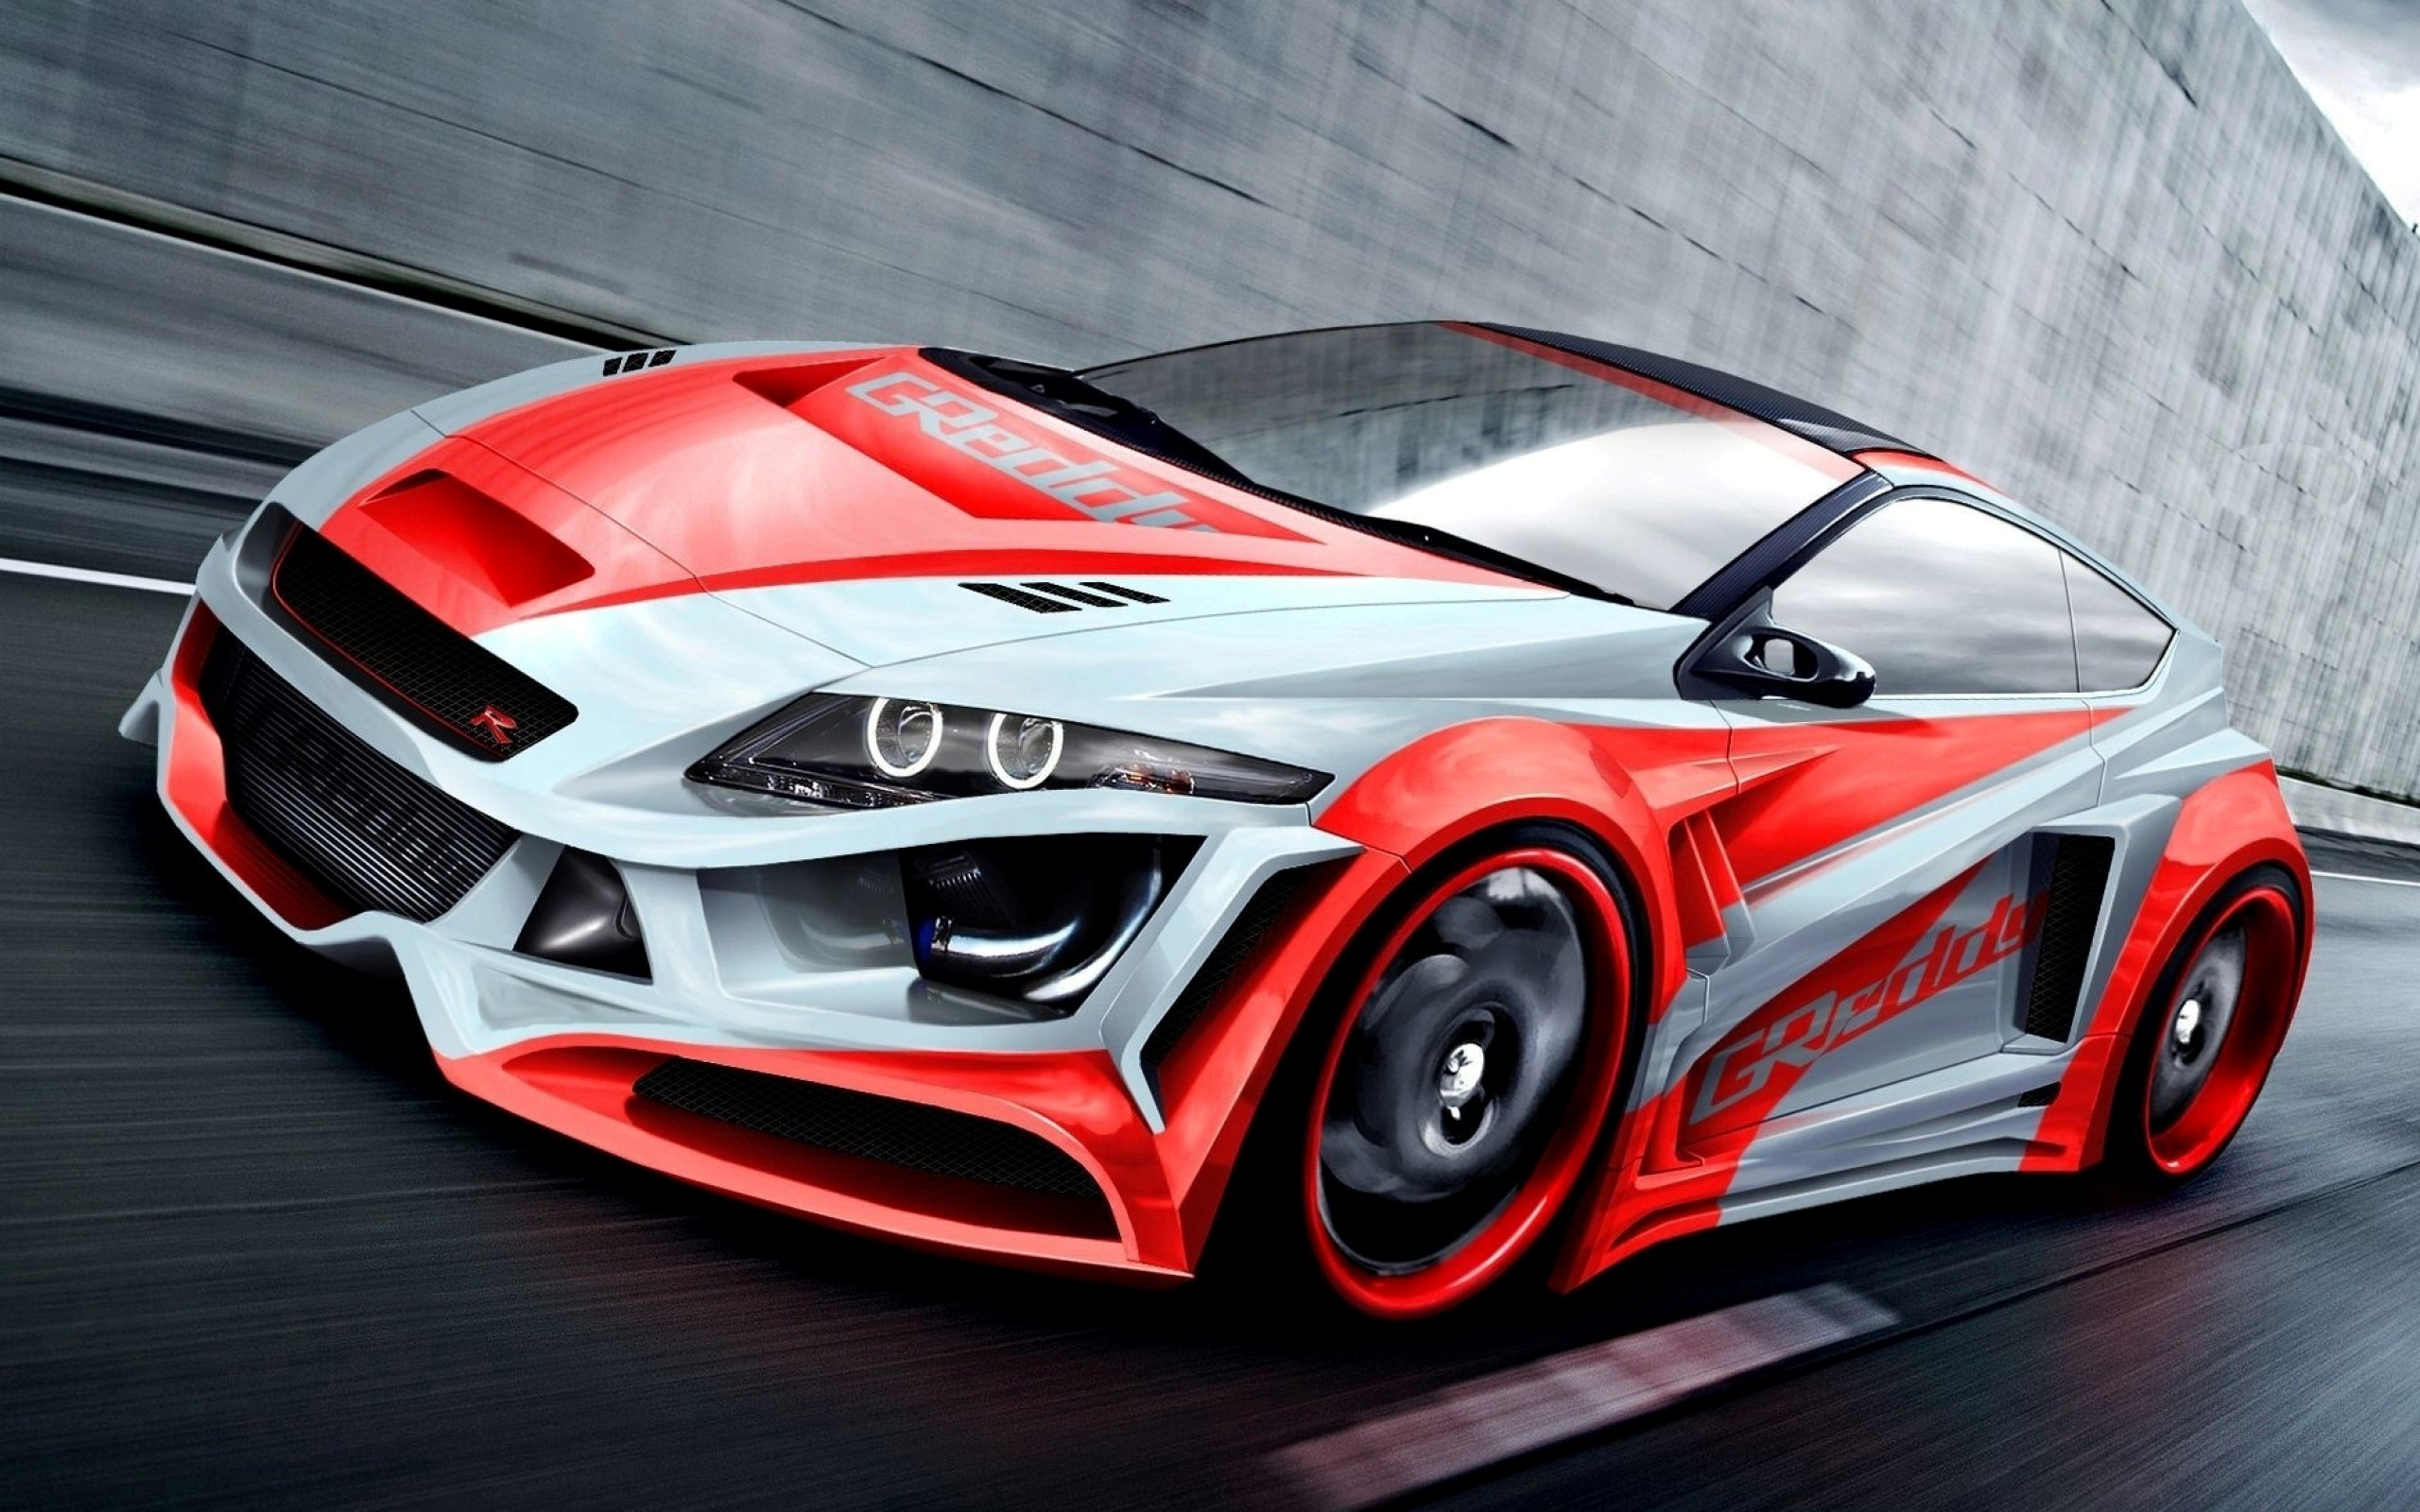 Free 3d Pictures Wallpapers Racing Cars Background Pictures New Best Hd Wallpapers